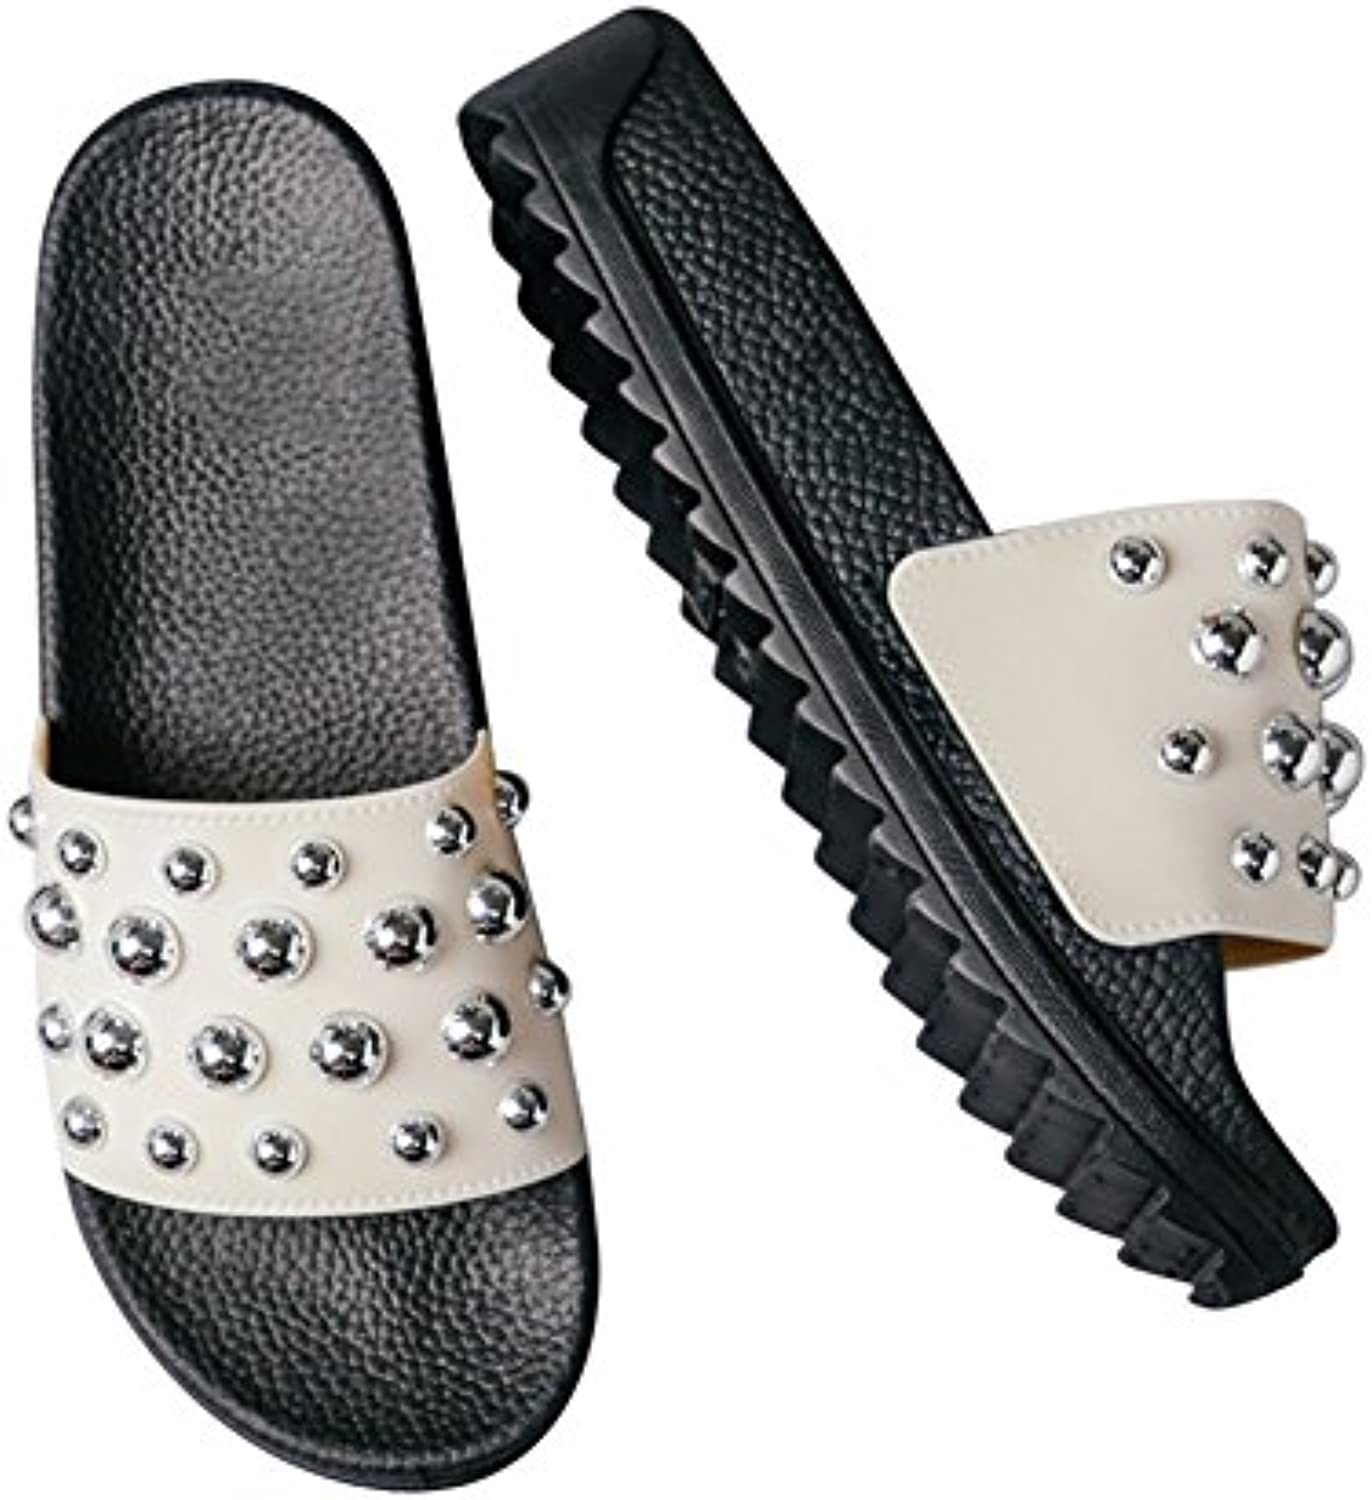 Chancletas Zapatillas Sandalia Remache Impermeable Star Beads Versión Coreana Muffin Bottom Moda Pendiente (3...